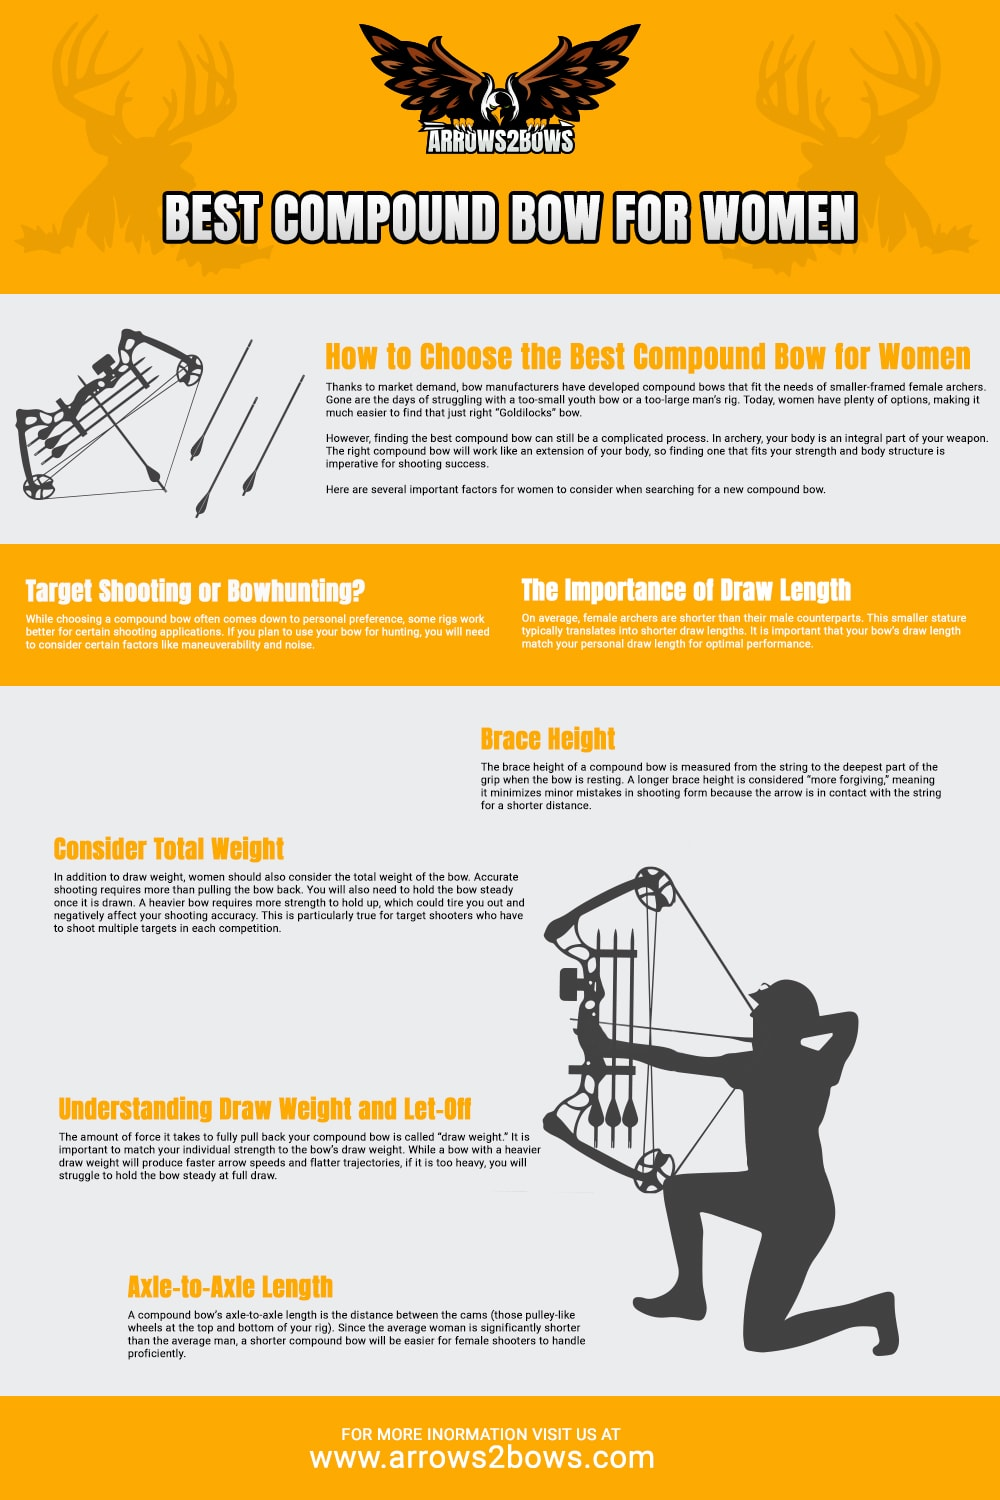 Best compound bow for women - How to choose the bow